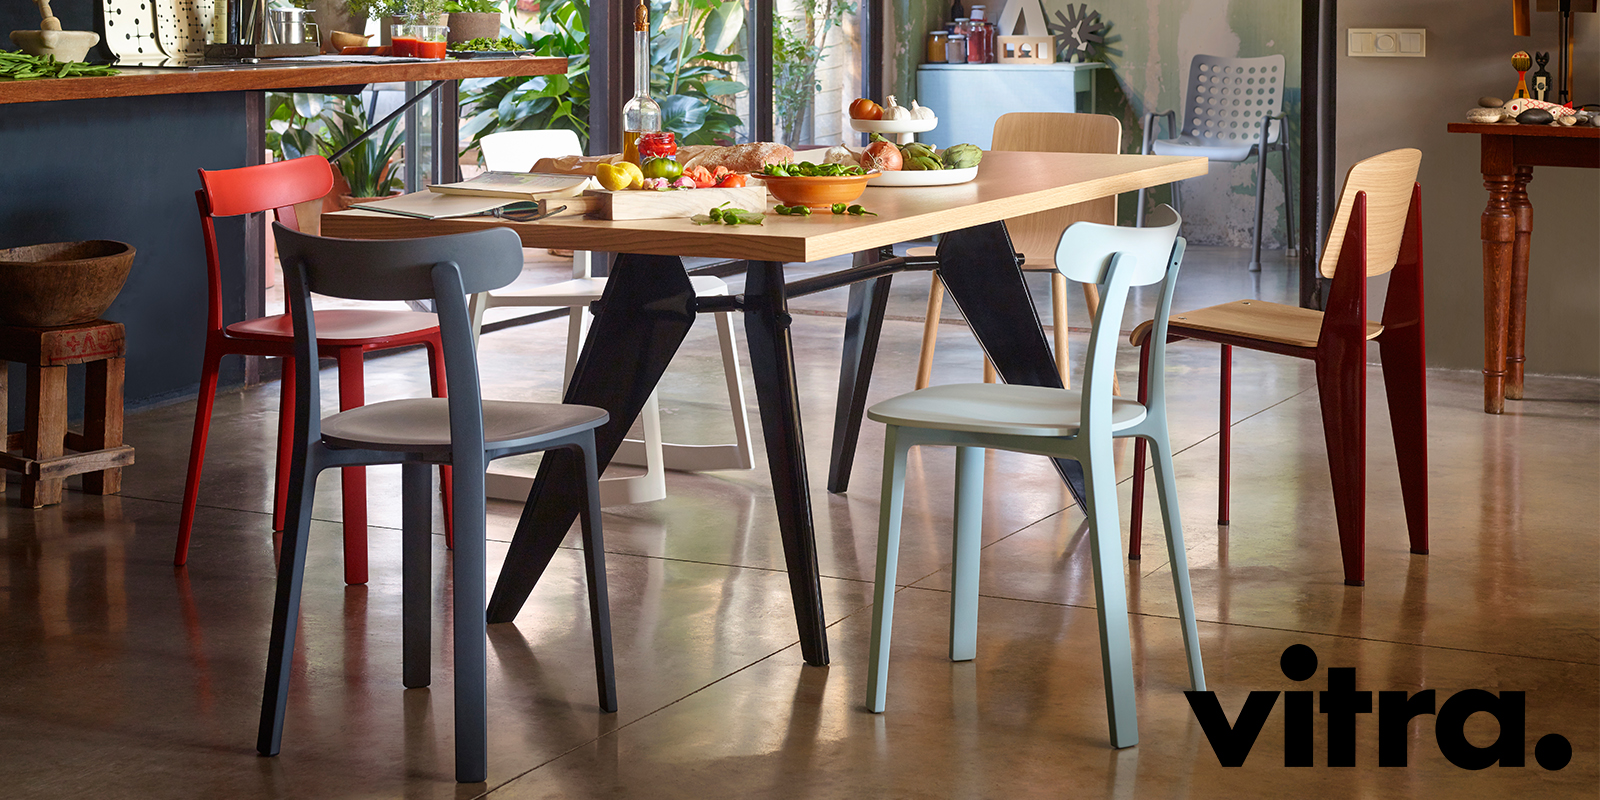 Vitra All Plastic Chair, Prouve Table